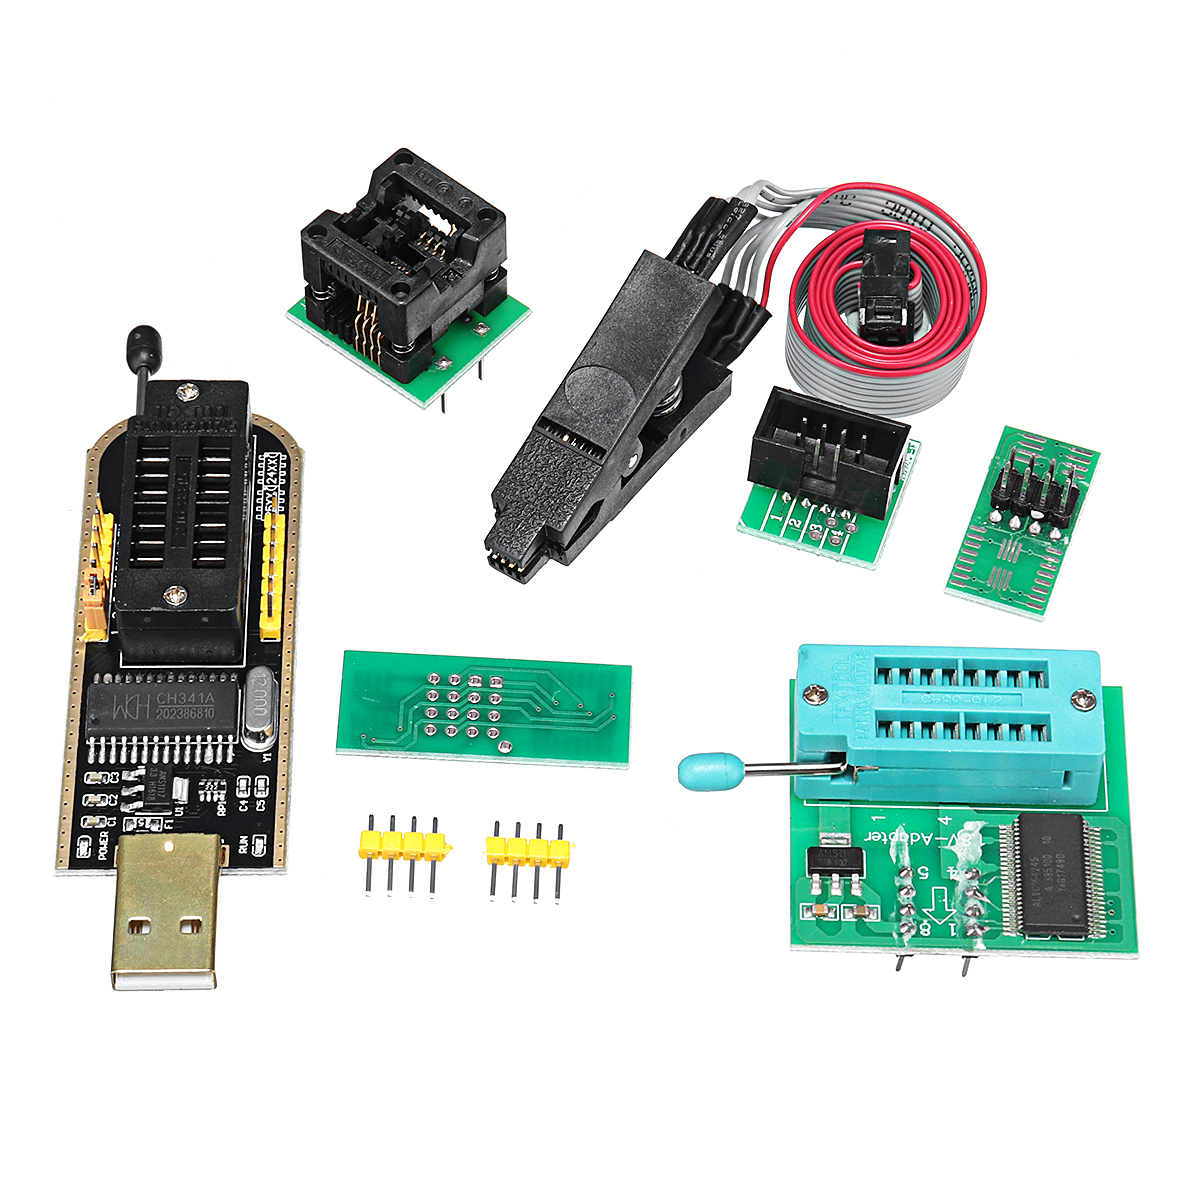 EEPROM-Flash-BIOS-USB Programmierer Modul CH341A + SOIC8 Clip + 1,8 v Adapter + SOIC8 Adapter